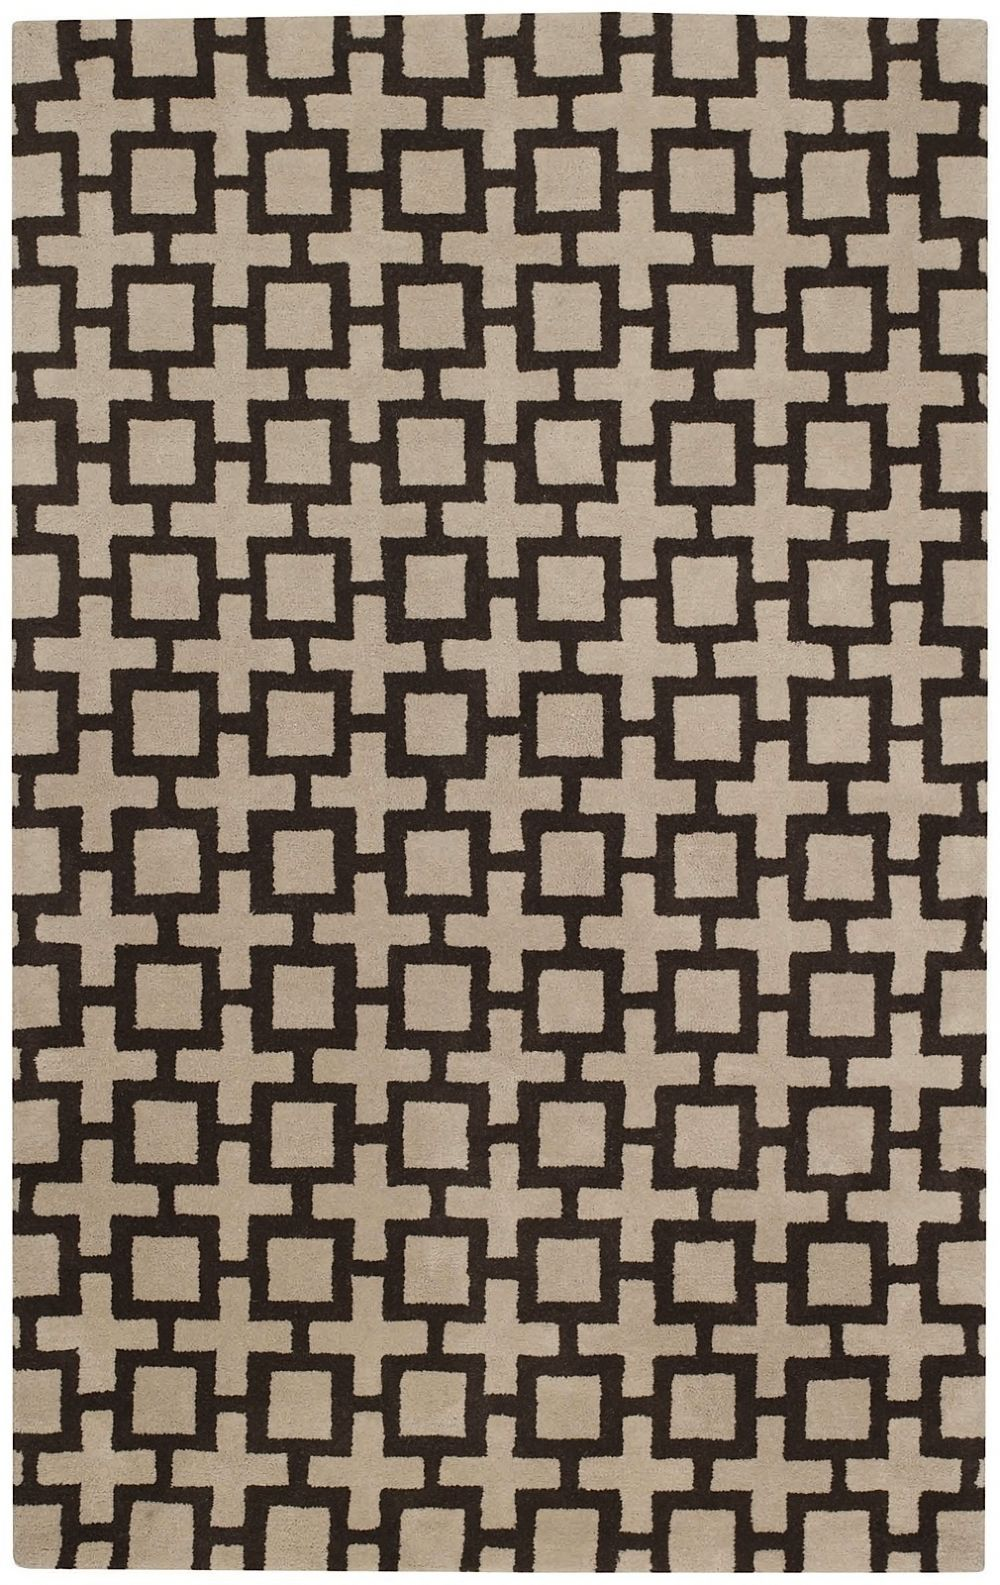 capel derry-plus one contemporary area rug collection